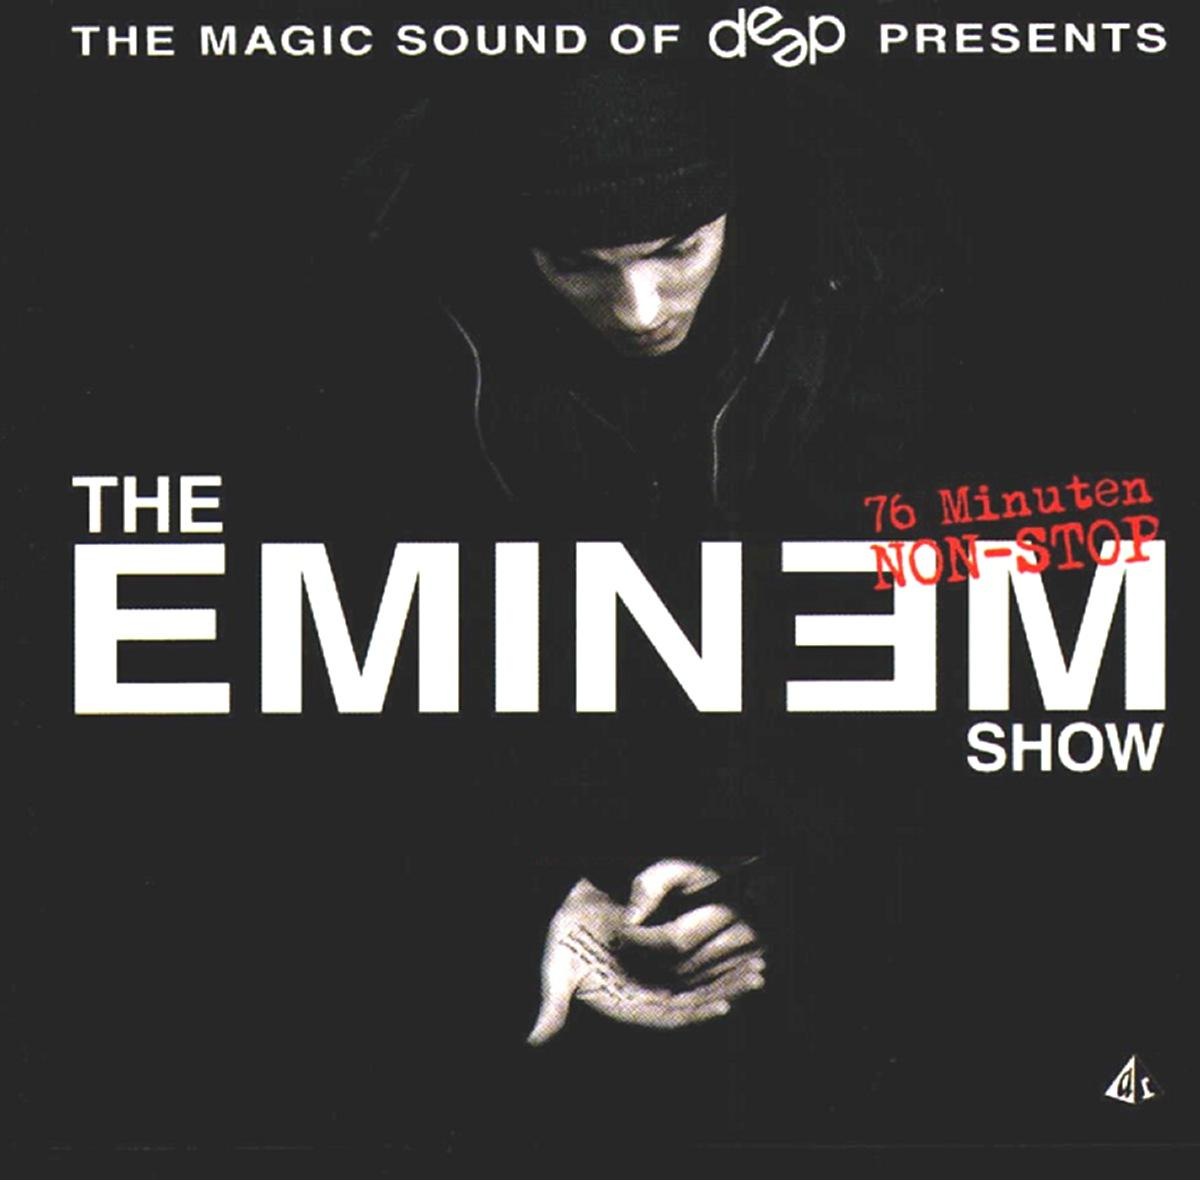 The Eminem Show Album Cover | www.imgkid.com - The Image ...